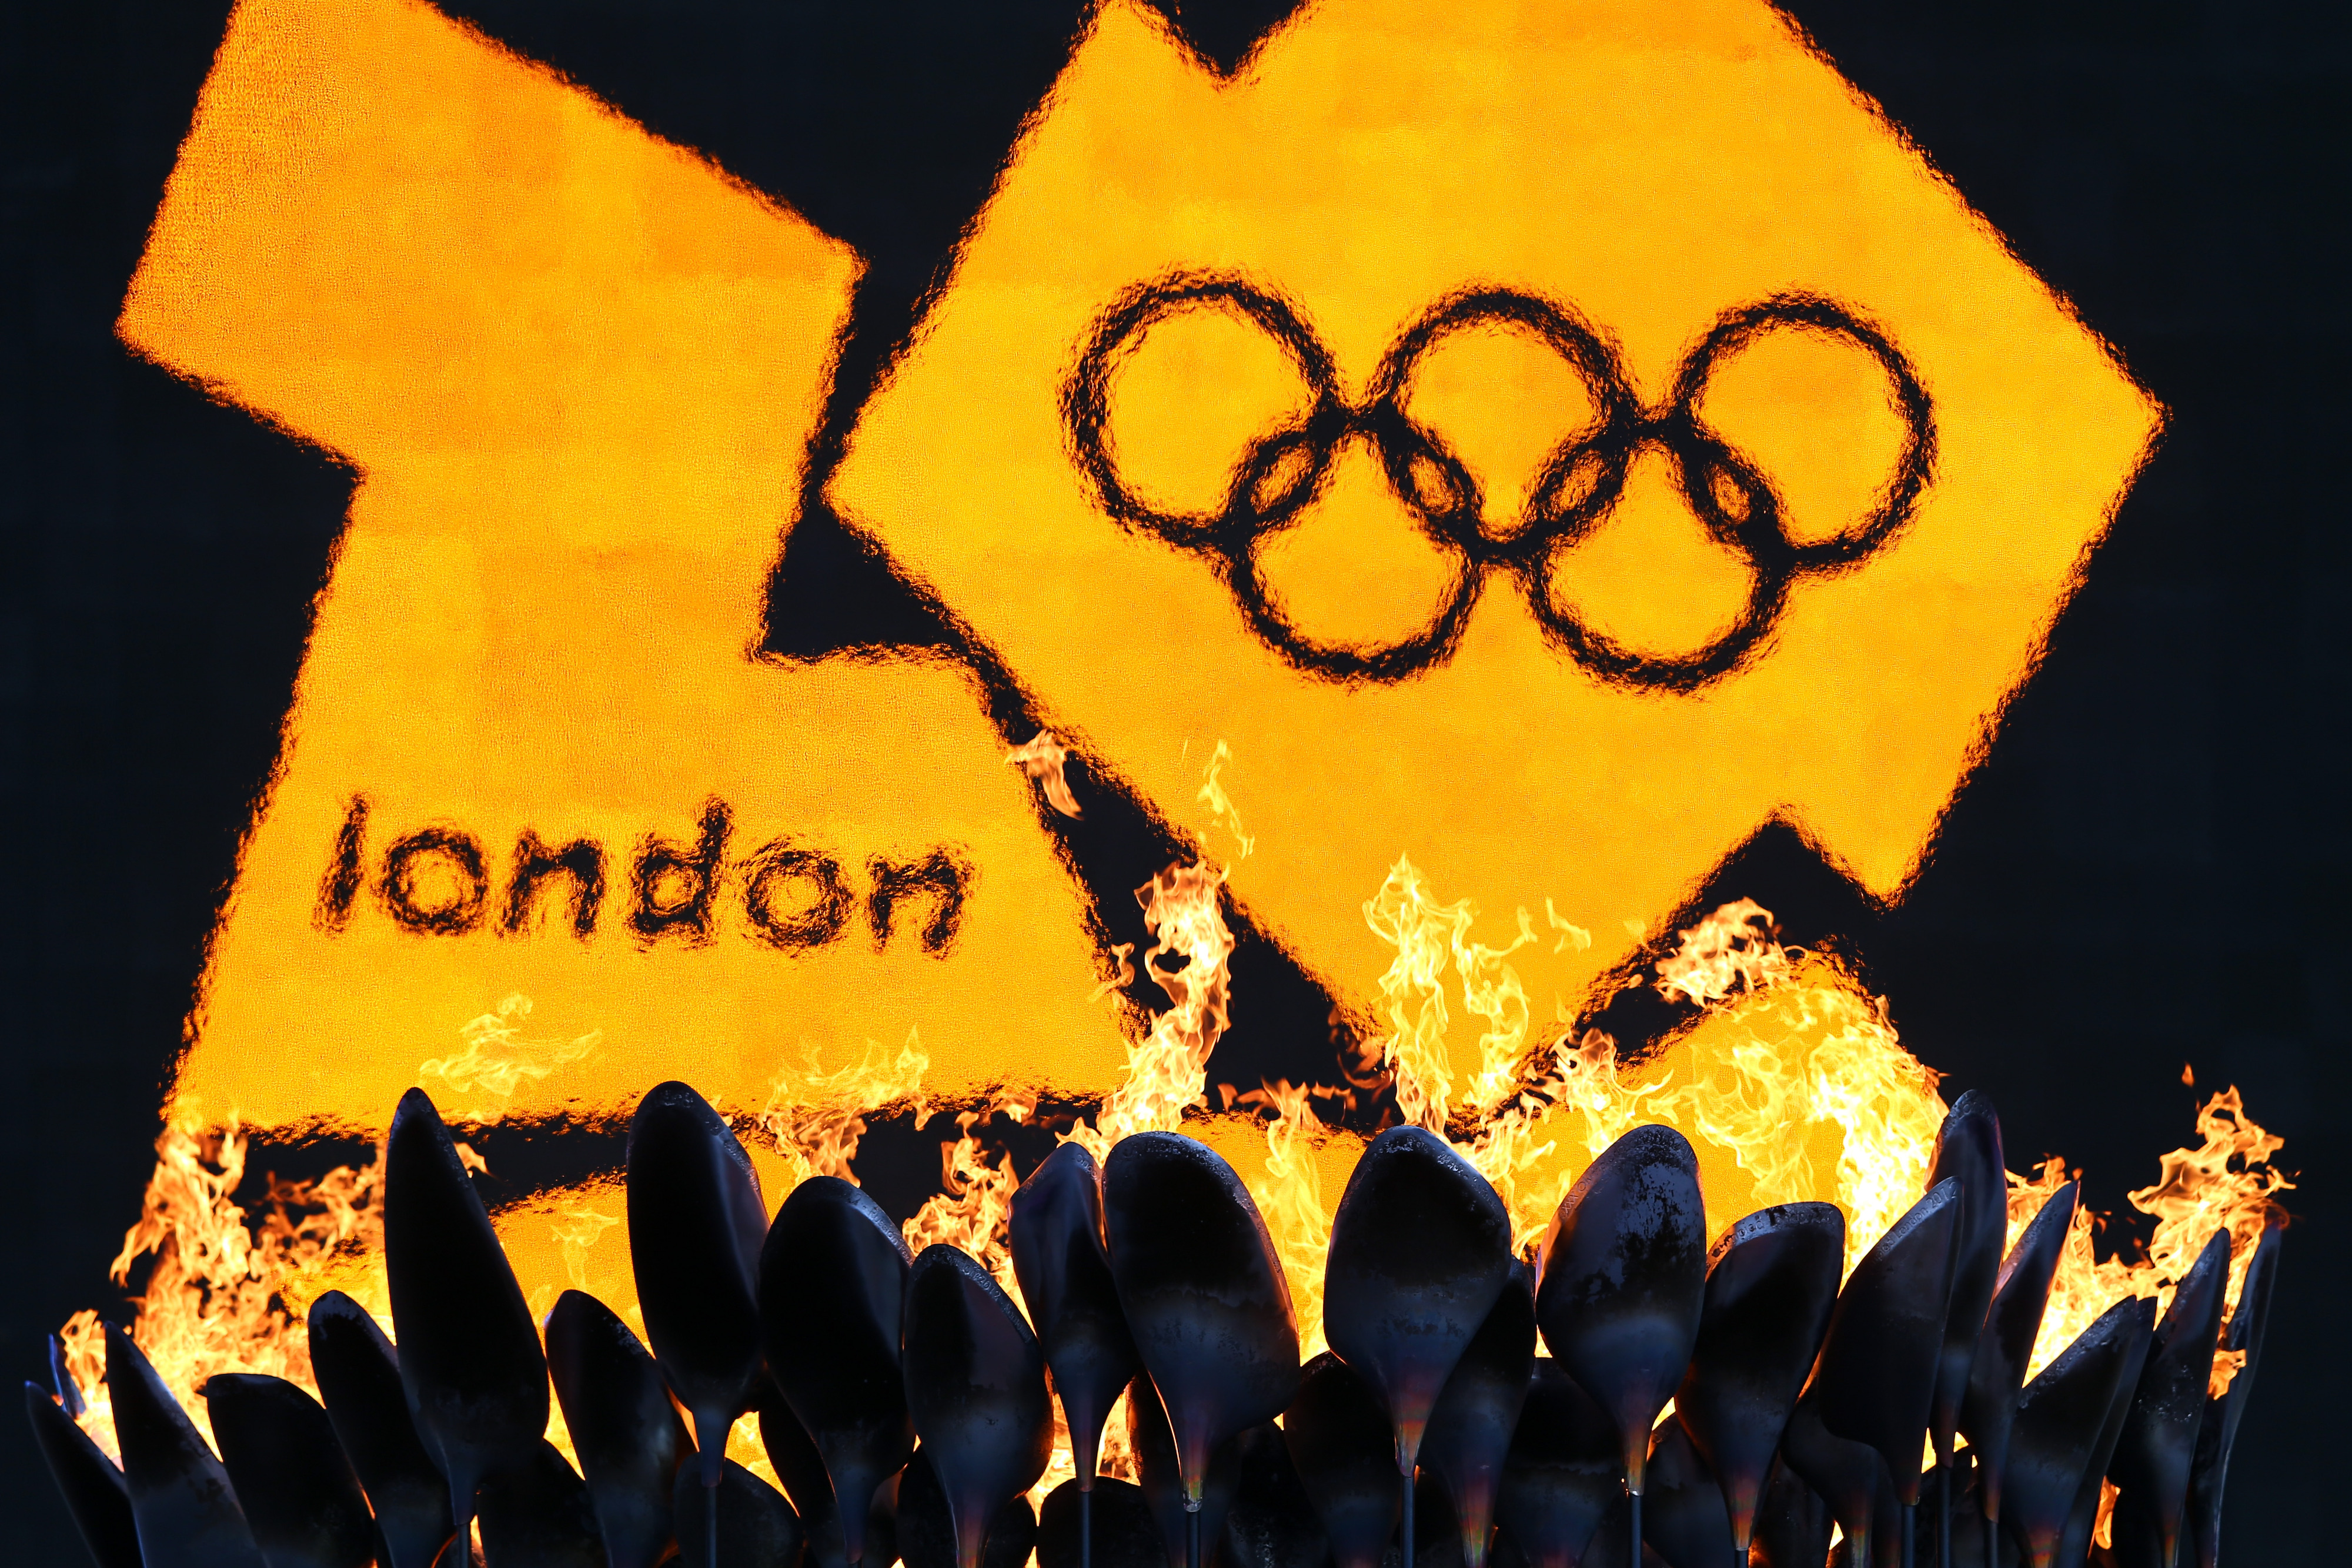 LONDON, ENGLAND - AUGUST 03:  The 2012 logo is seen as the Olympic Cauldron burns on Day 7 of the London 2012 Olympic Games at Olympic Stadium on August 3, 2012 in London, England.  (Photo by Michael Steele/Getty Images)